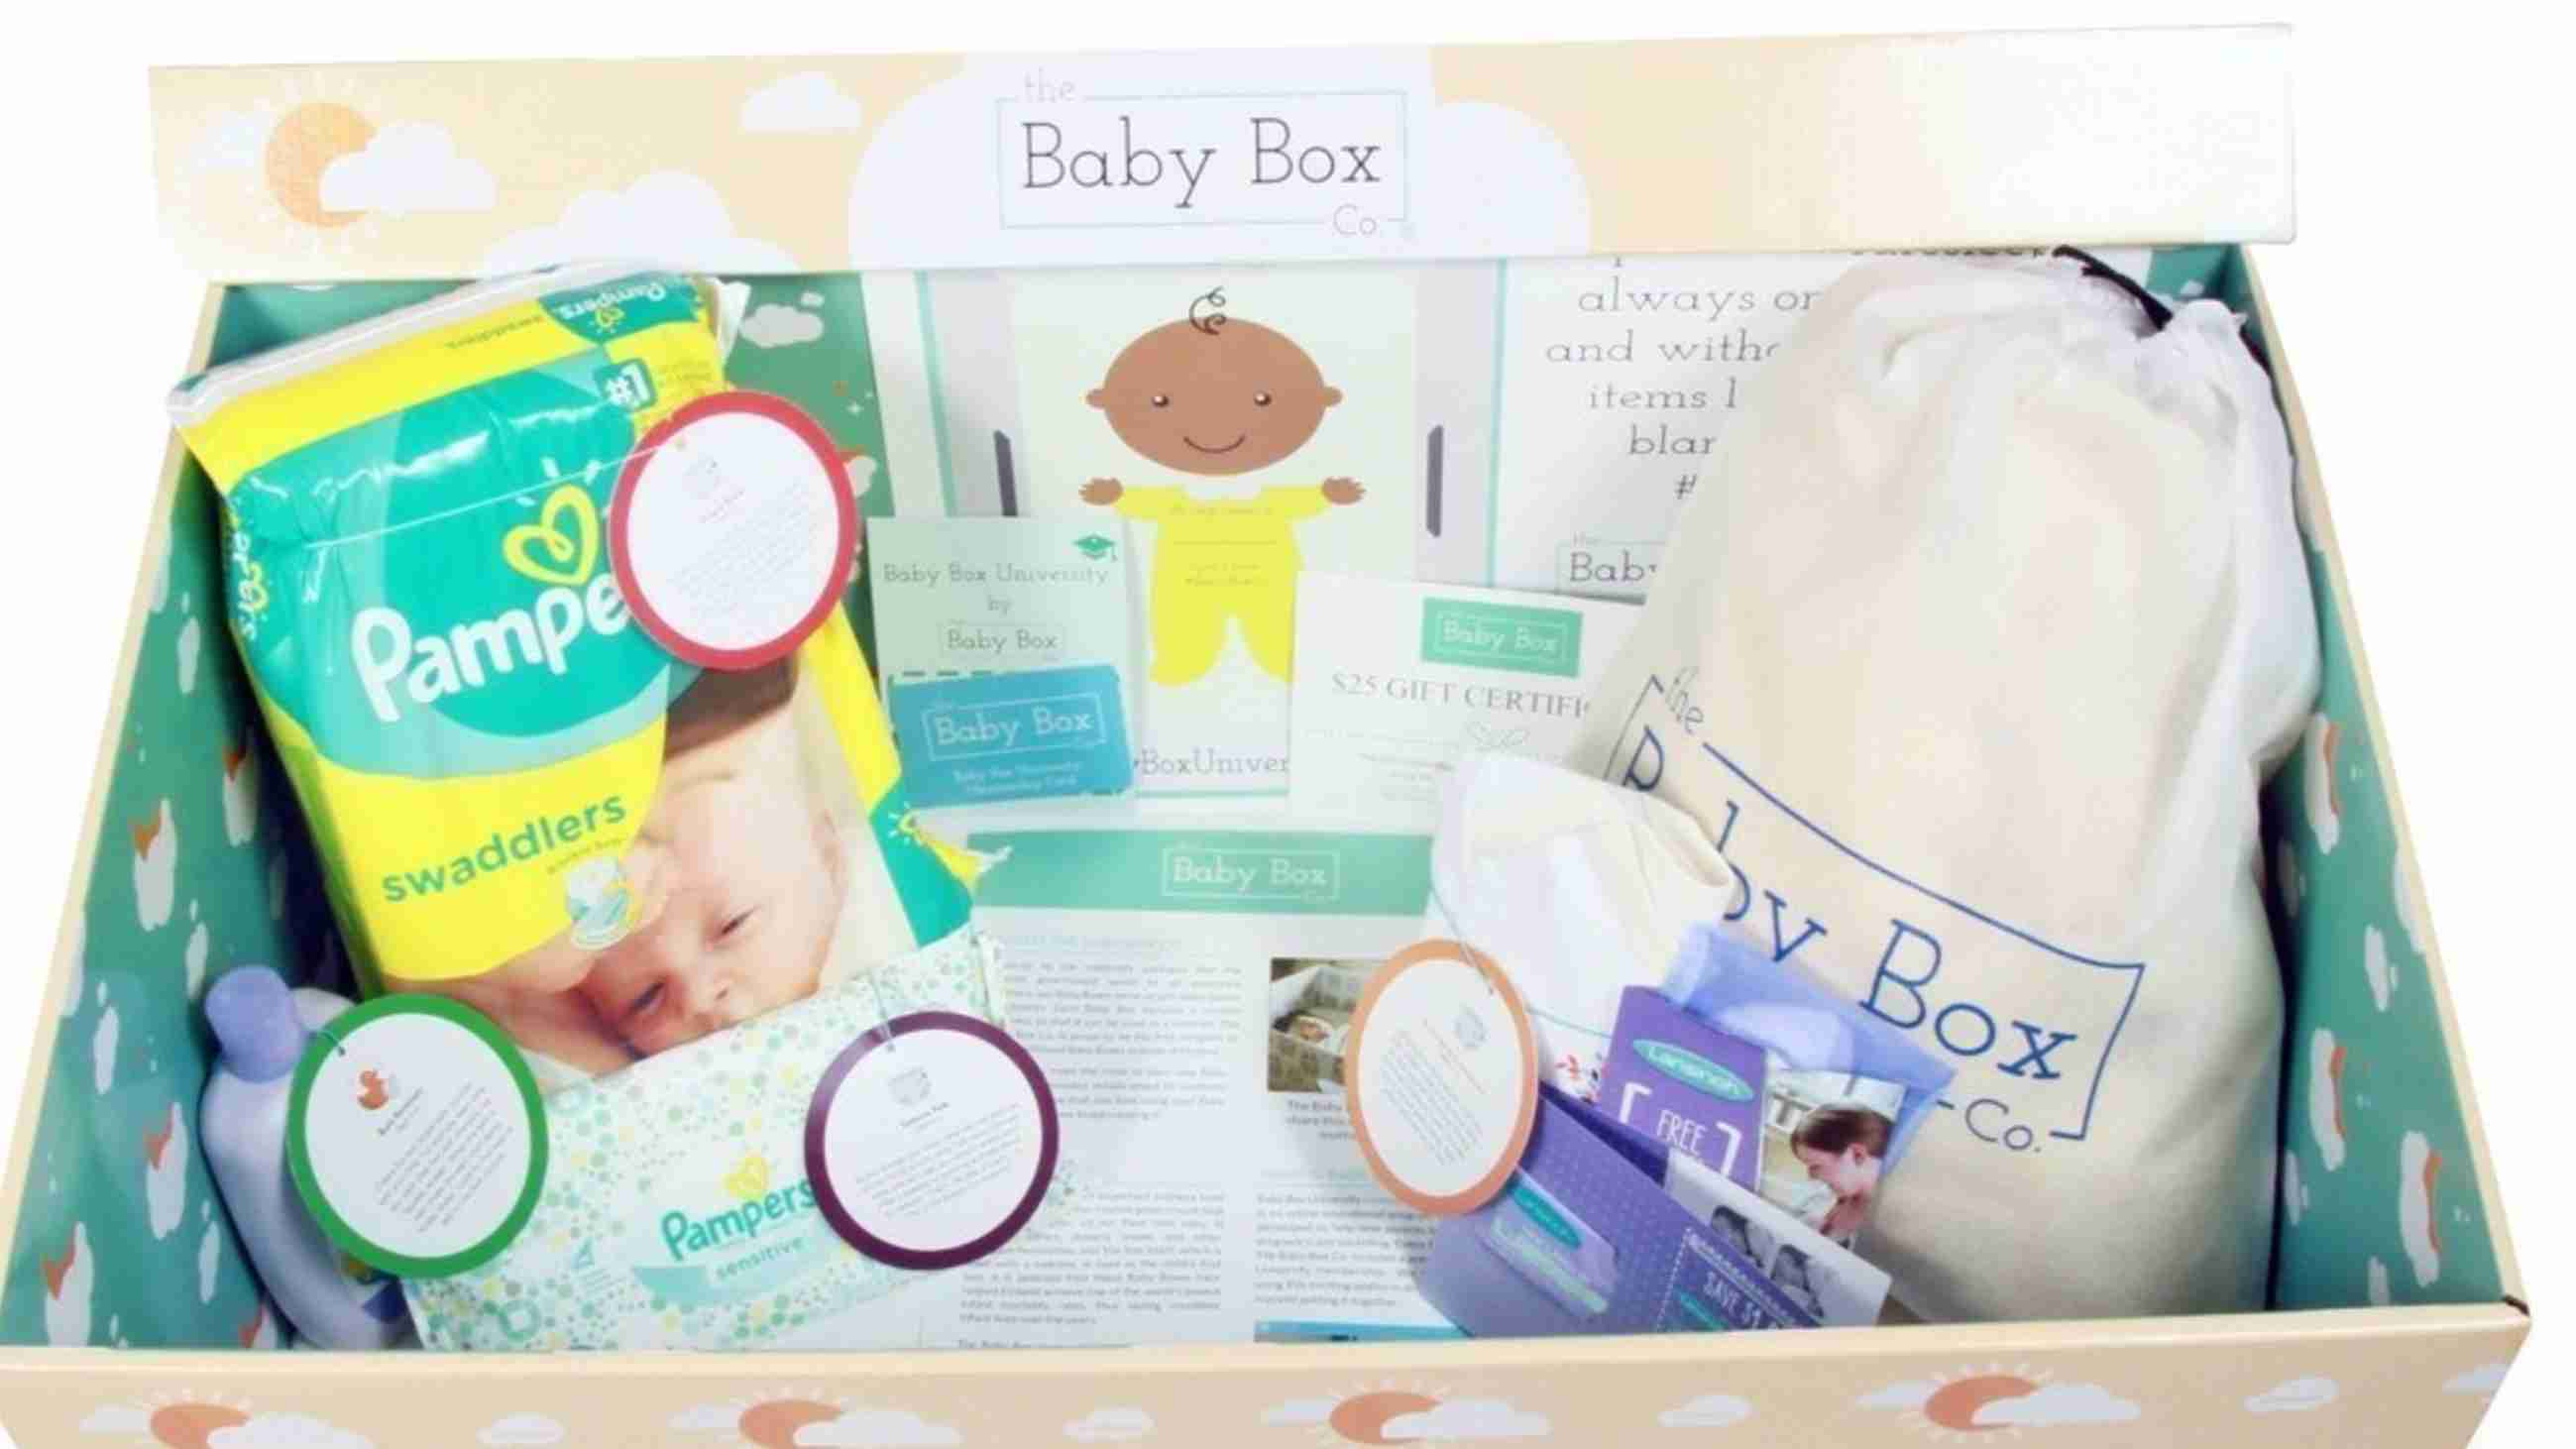 Selecting a baby box for your baby